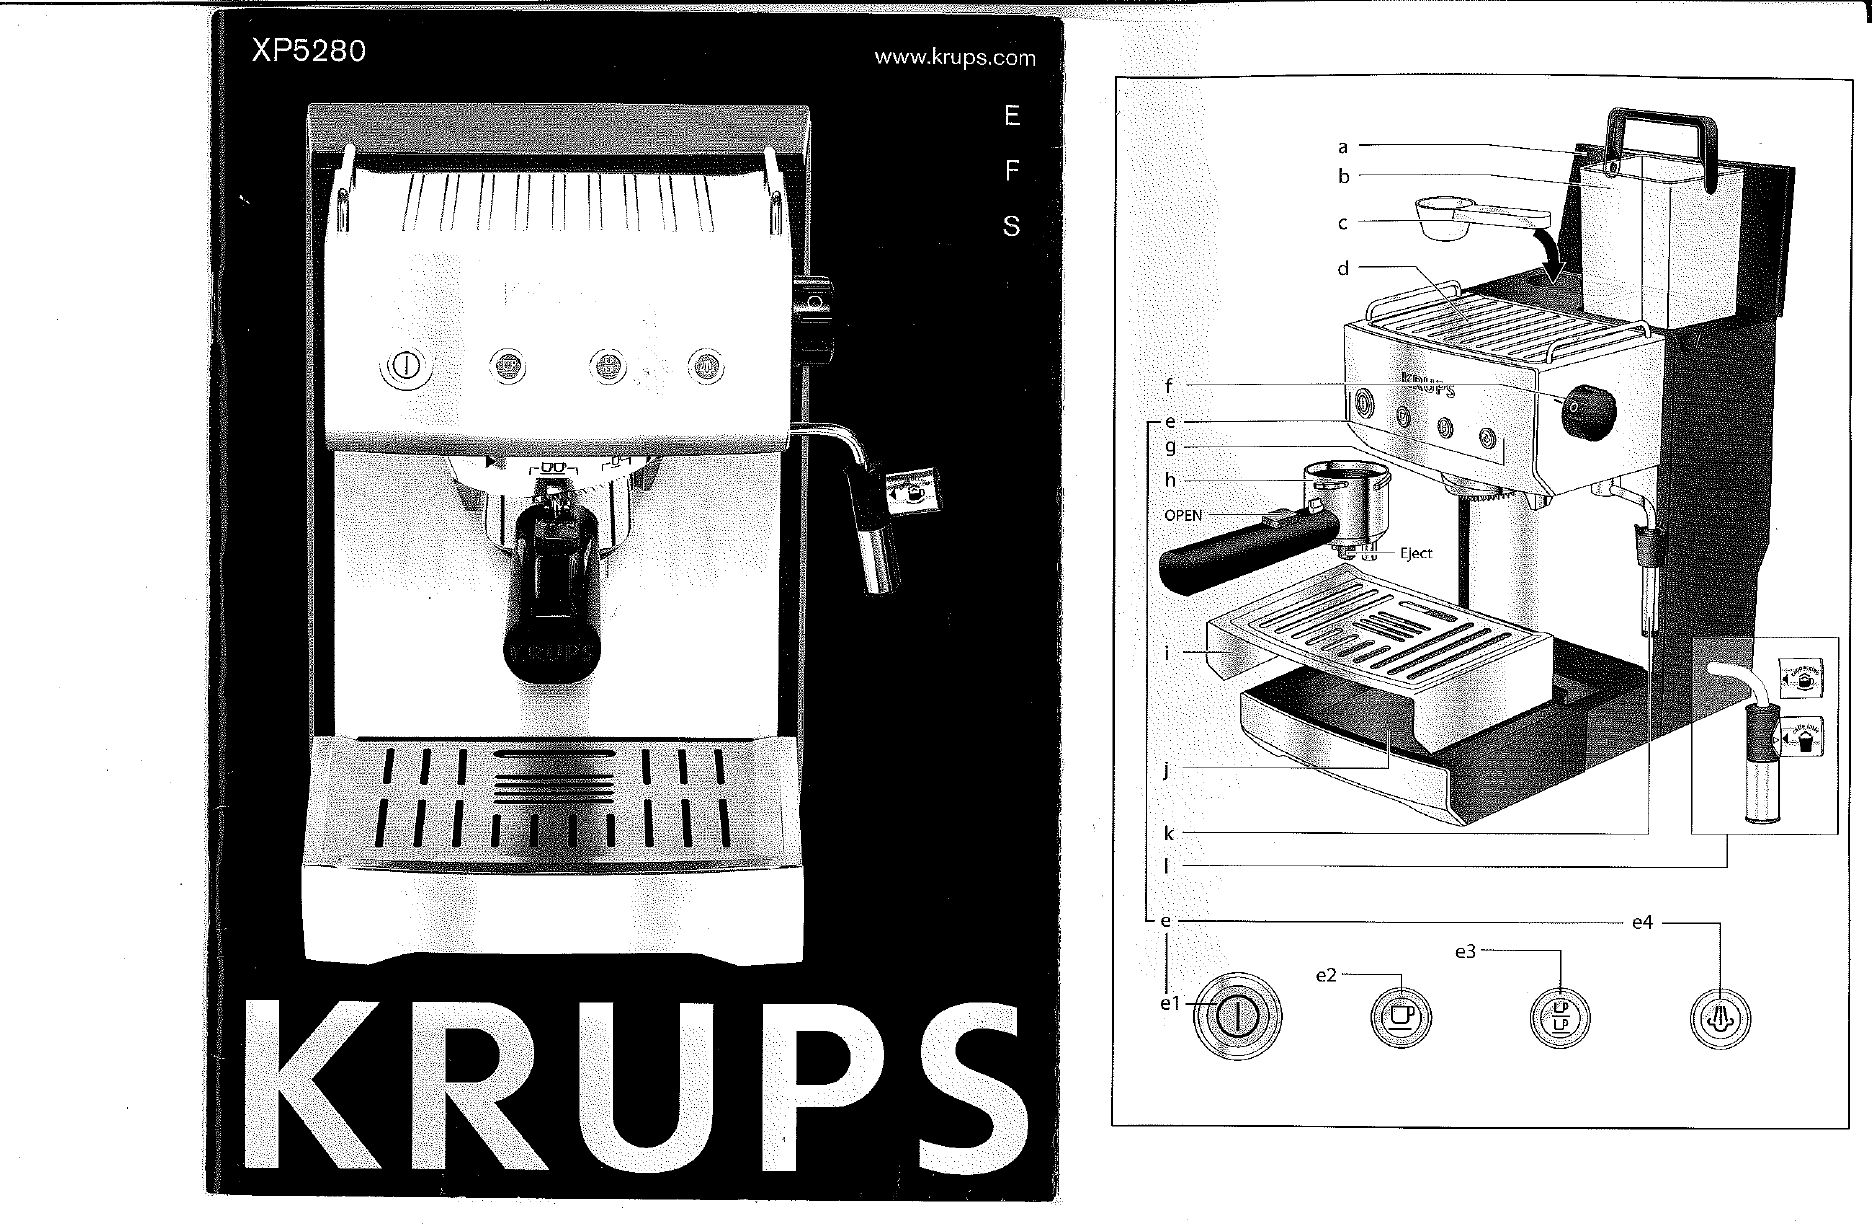 krups coffeemaker xp5280 user guide manualsonline com rh kitchen manualsonline com krups ea8298 user guide krups 871 user guide